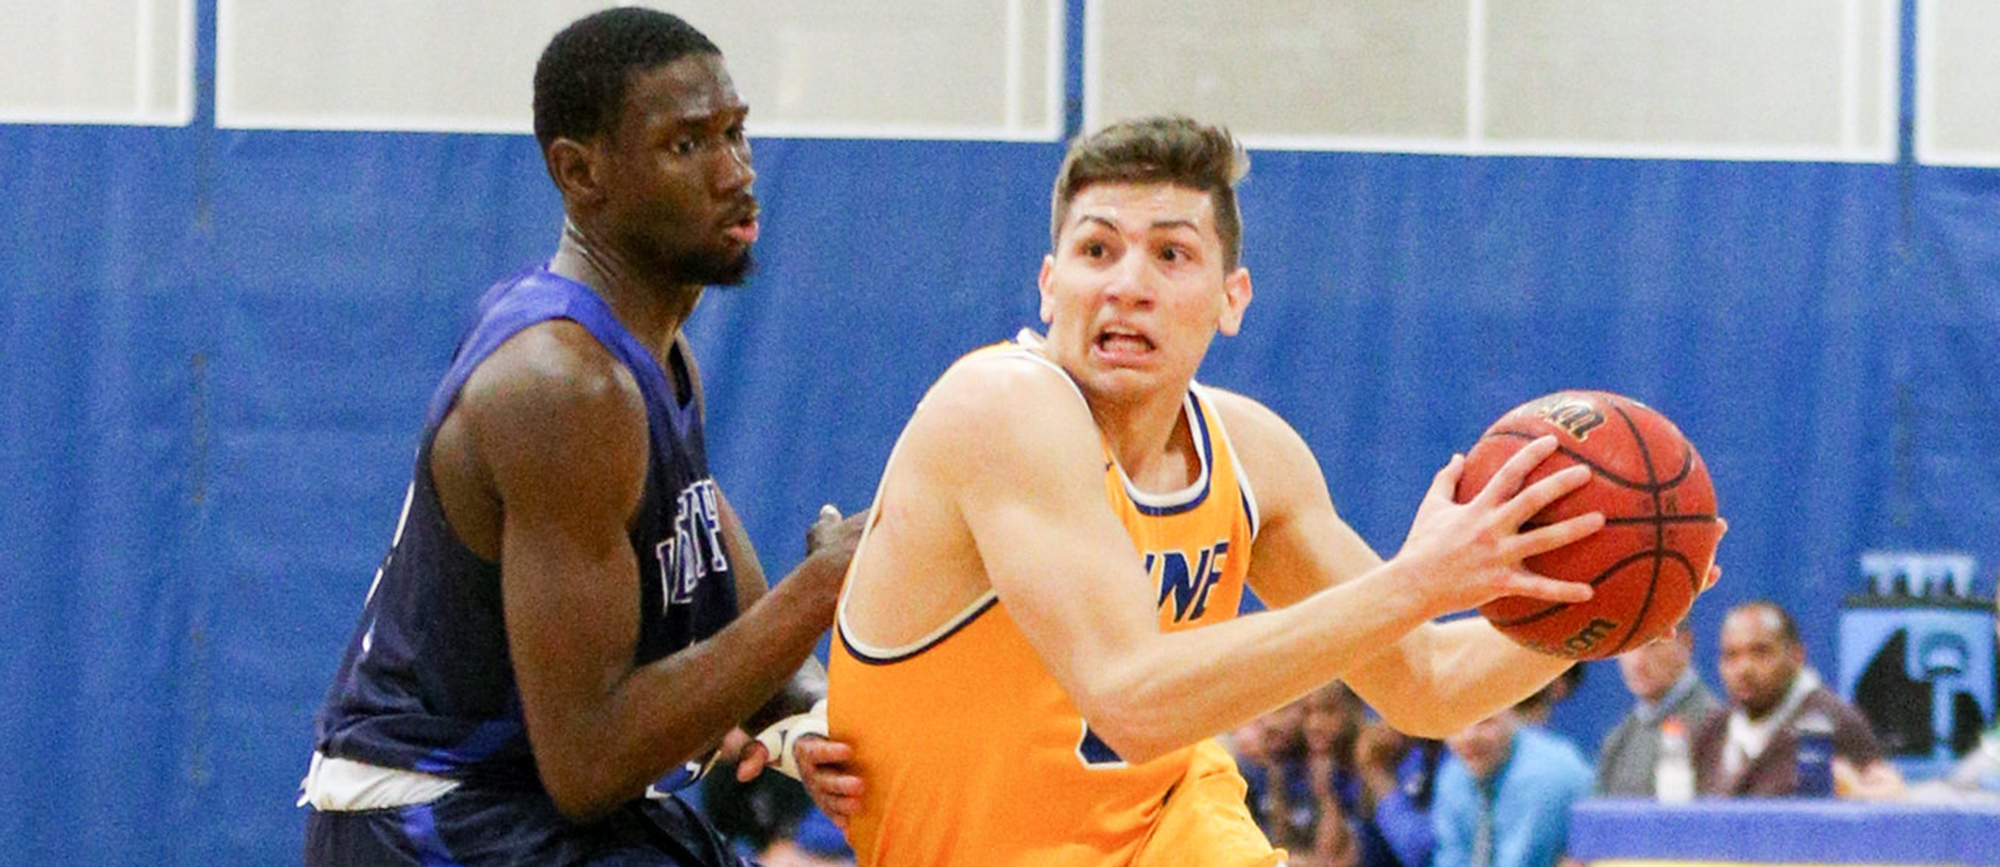 Antonio Brancato contributed 11 points, seven rebounds and five assists off the bench in Western New England's 87-78 loss to Endicott on Saturday. (Photo by Chris Marion)